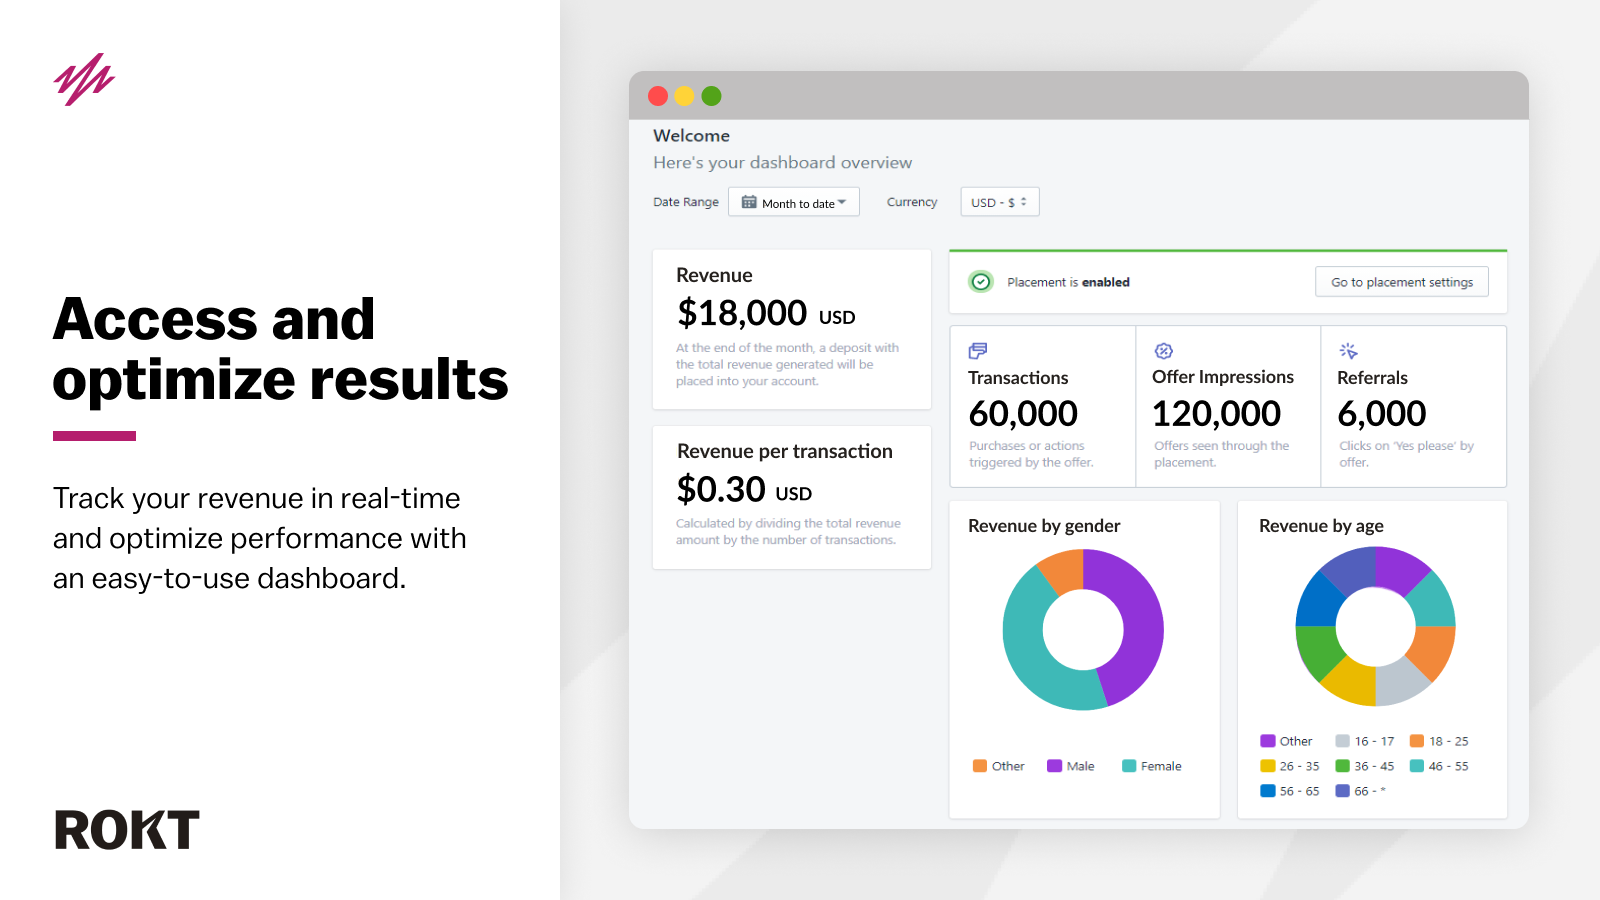 Track revenue and optimize performance with an easy dashboard